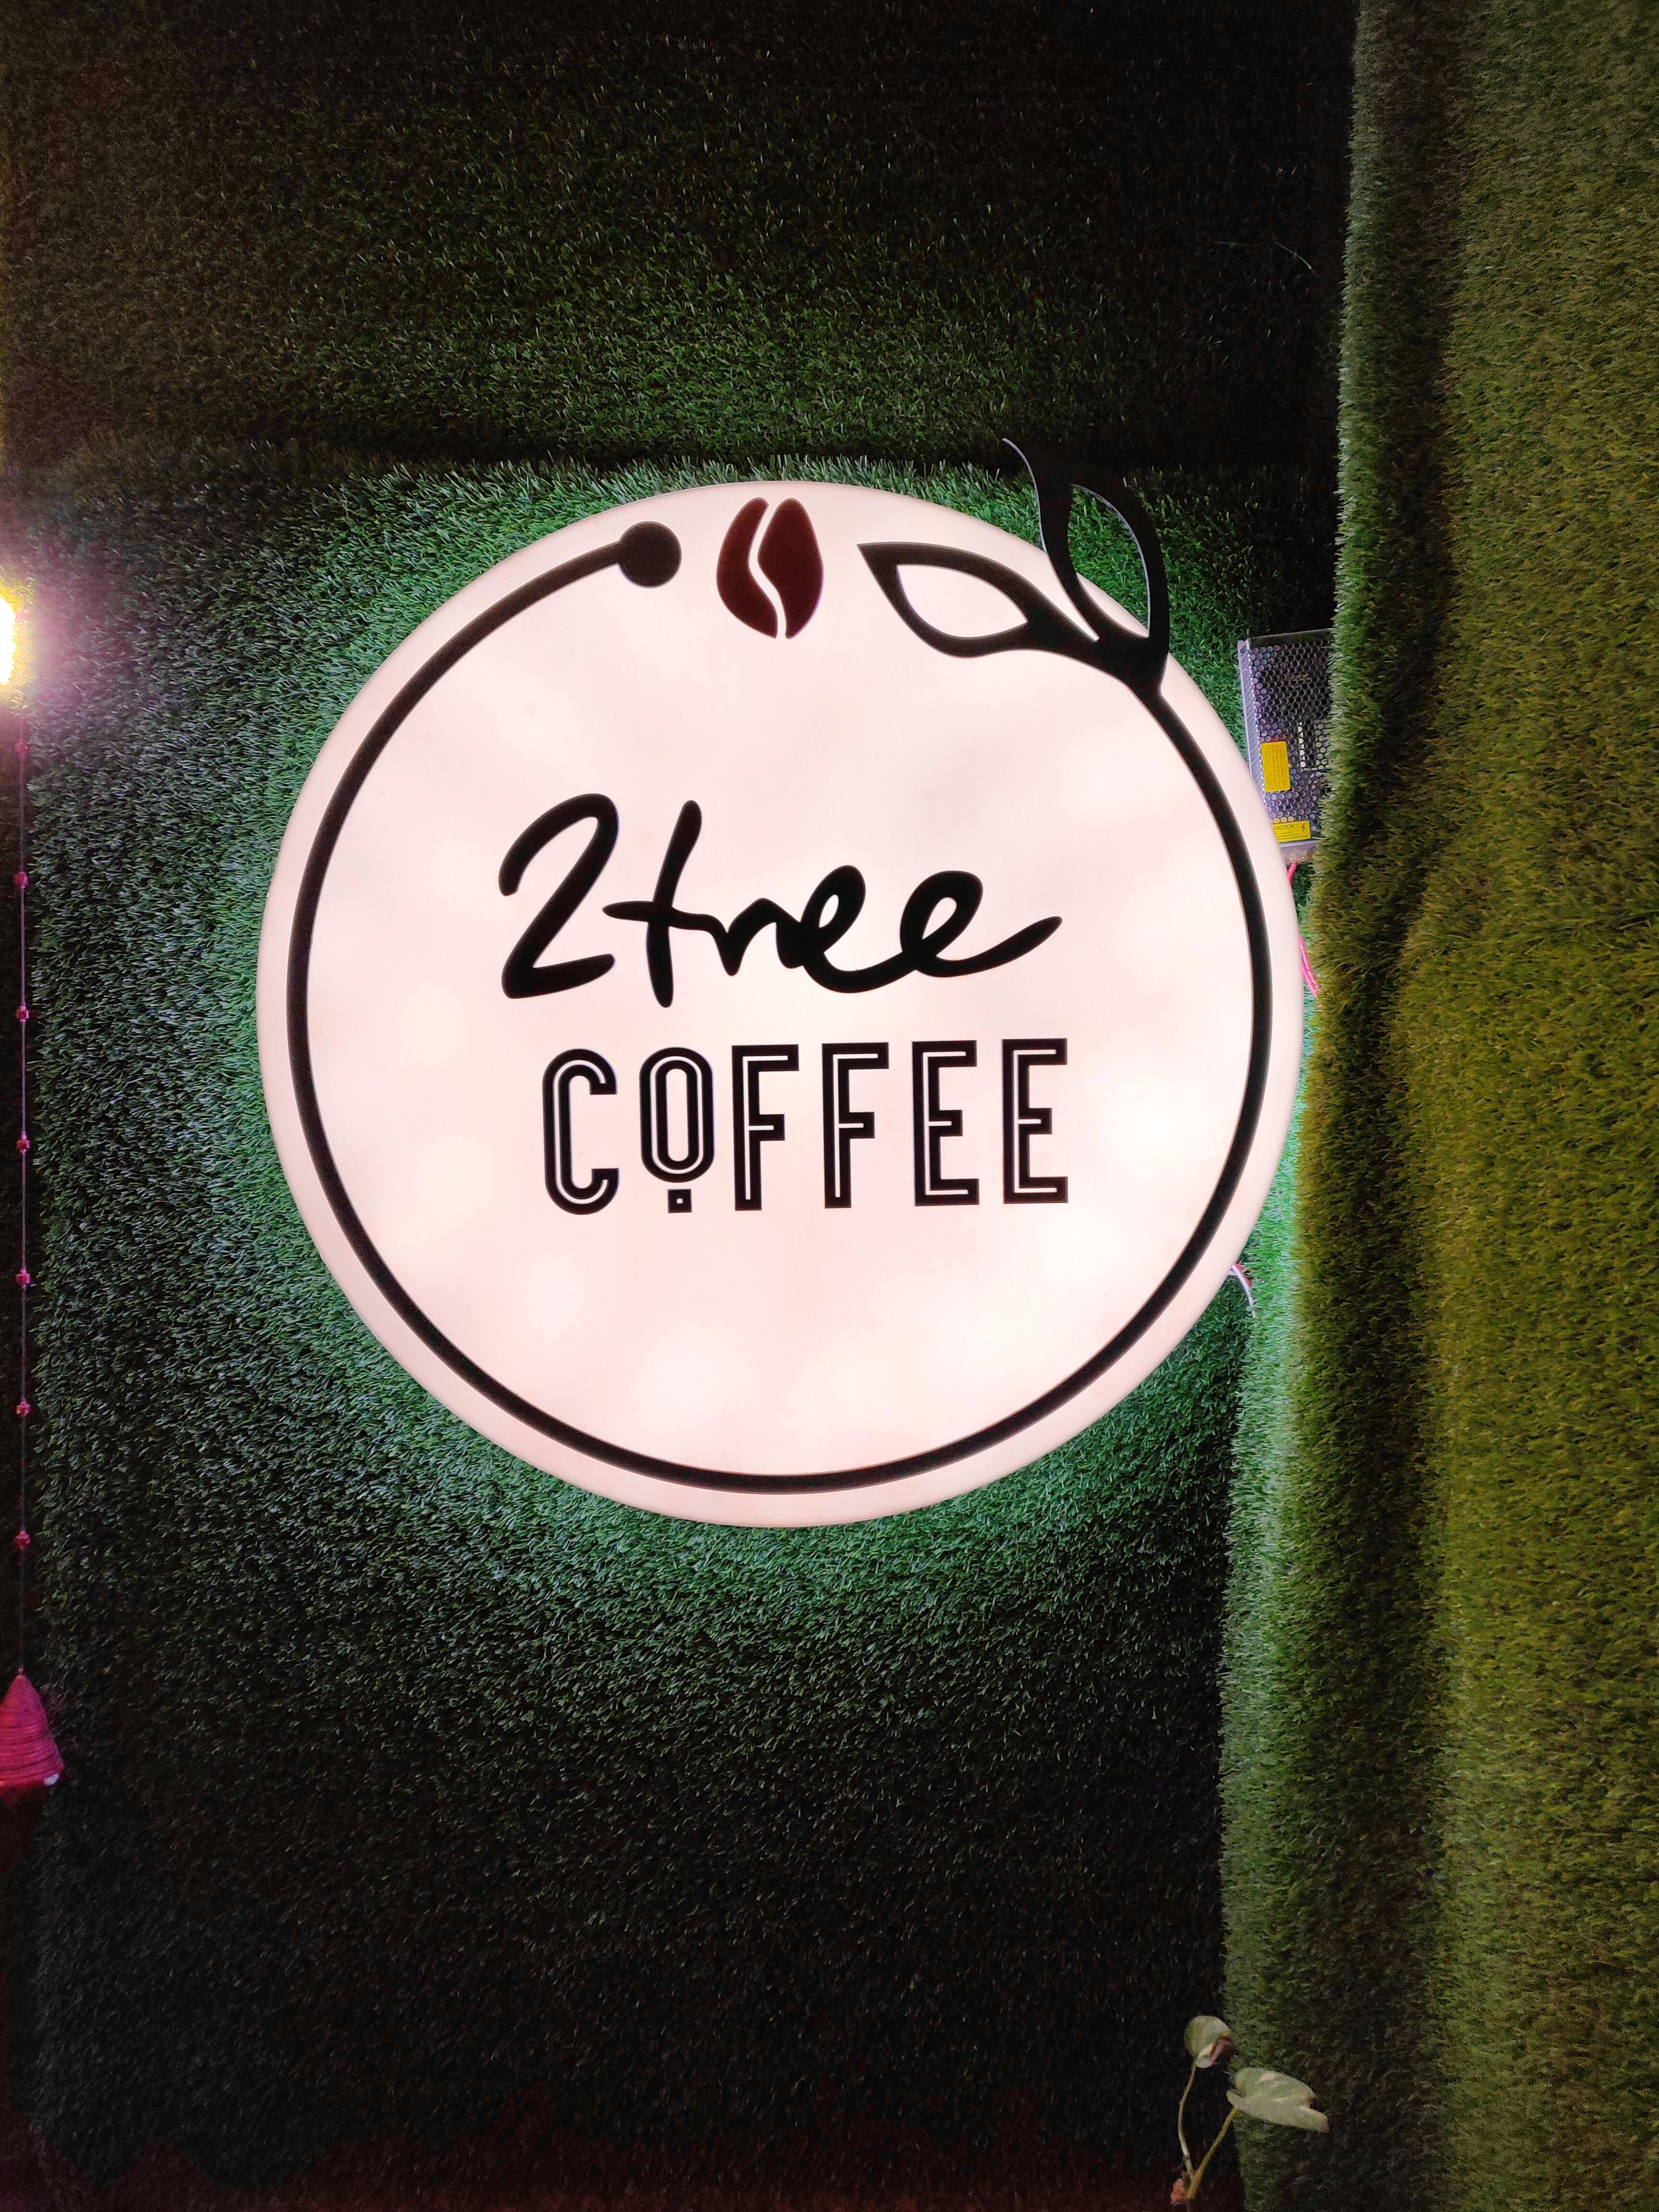 2 Tree Coffee: Drink Coffee And Save The Planet